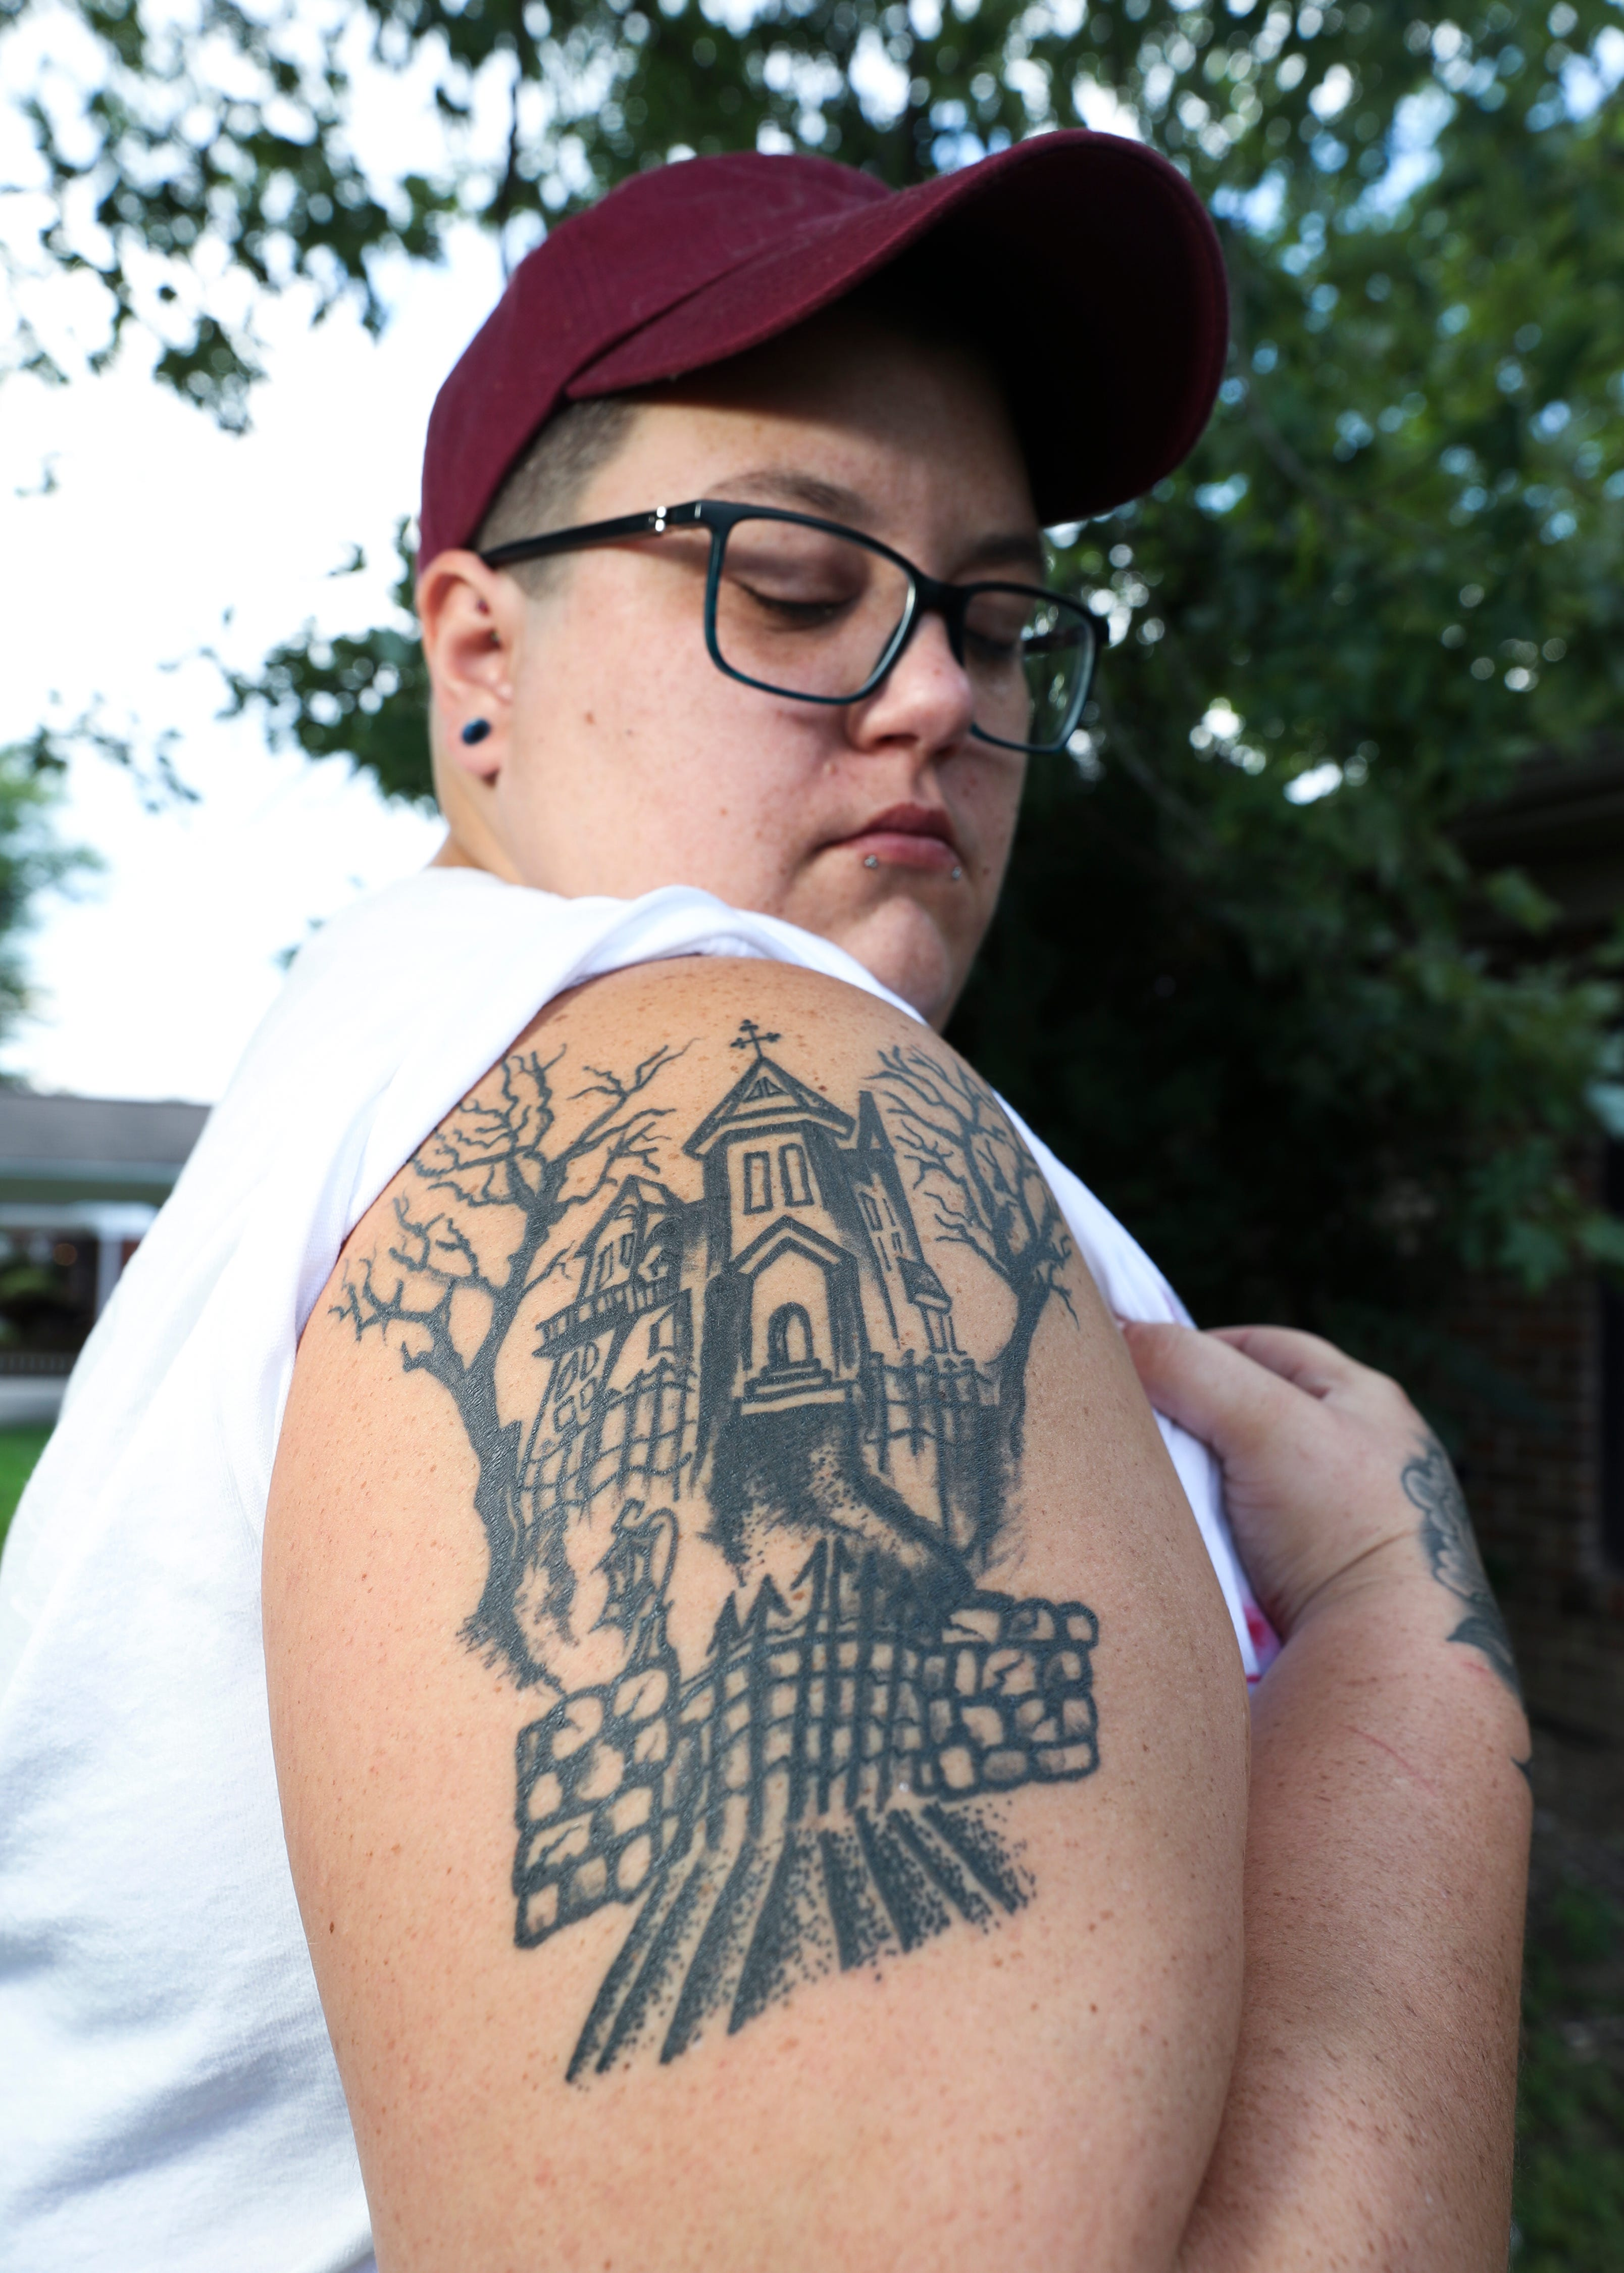 Lacy Hatfield wears a tattoo of a haunted house on her arm in honor of her 14-year-old nephew, Darrin Thiele III, at her home in Louisville, Ky. on Aug. 3, 2021.  They enjoyed celebrating Halloween together.  Darrin was shot dead in the St. Dennis neighborhood in April.  She helped raise him and thought of him as a son.